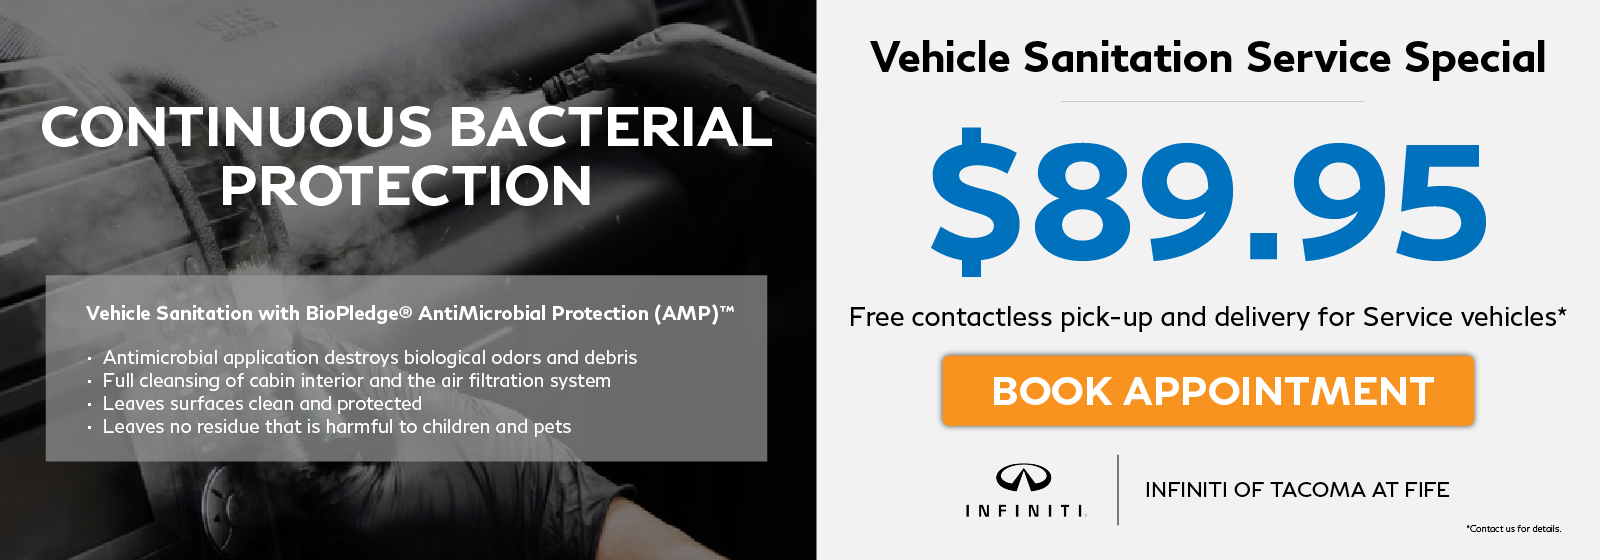 Vehicle Sanitation Service Special $89.95. Free contactless pick-up & delivery! Click to book appointment.